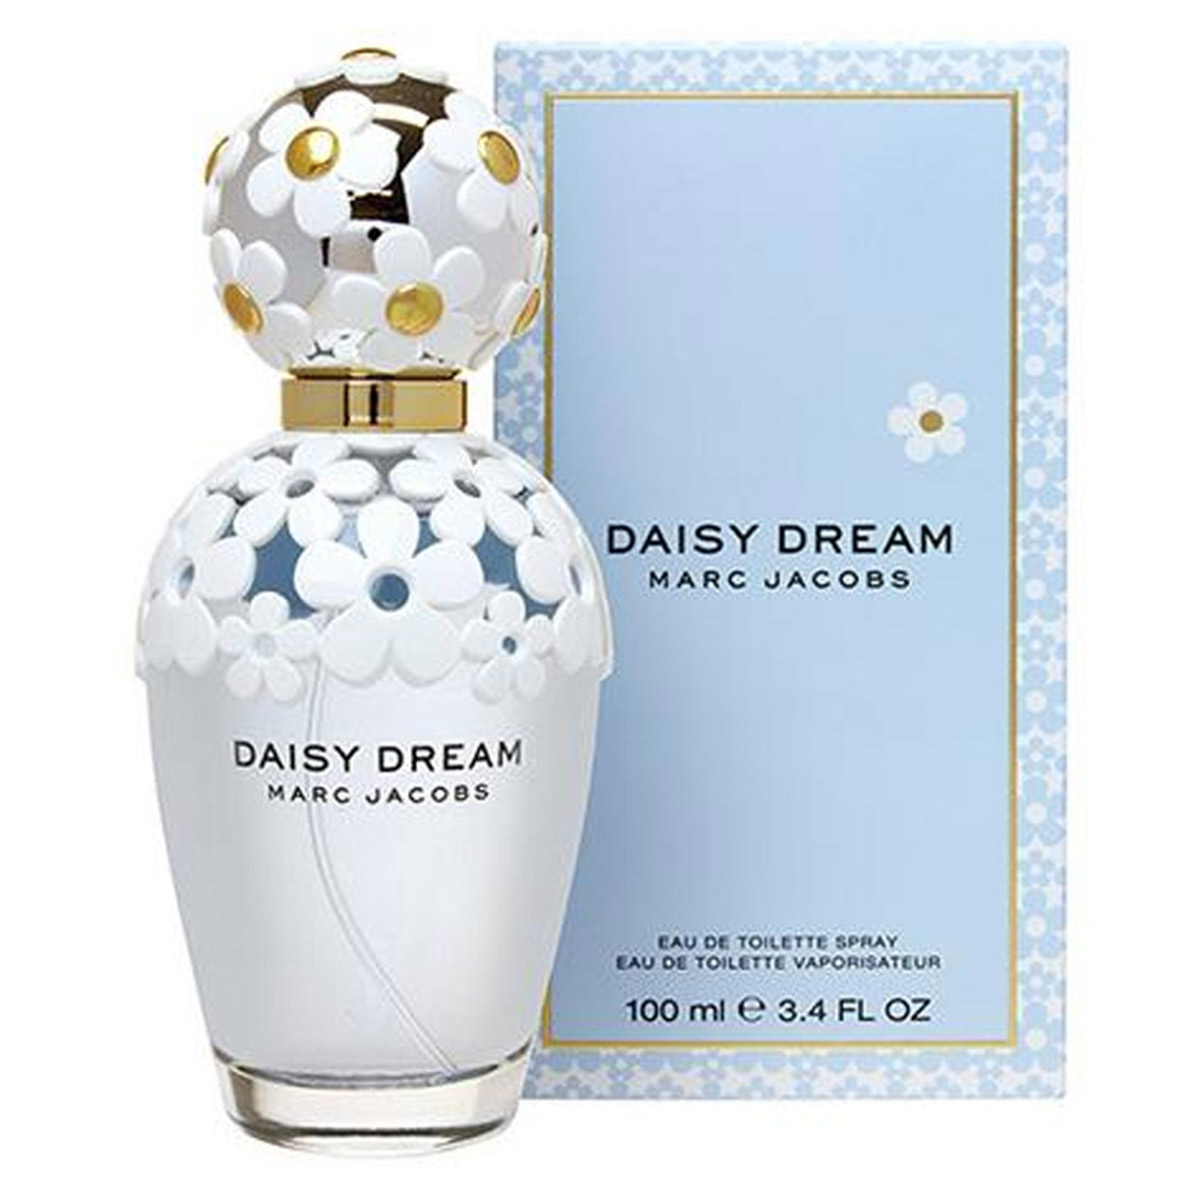 Daisy's Dream 100ml